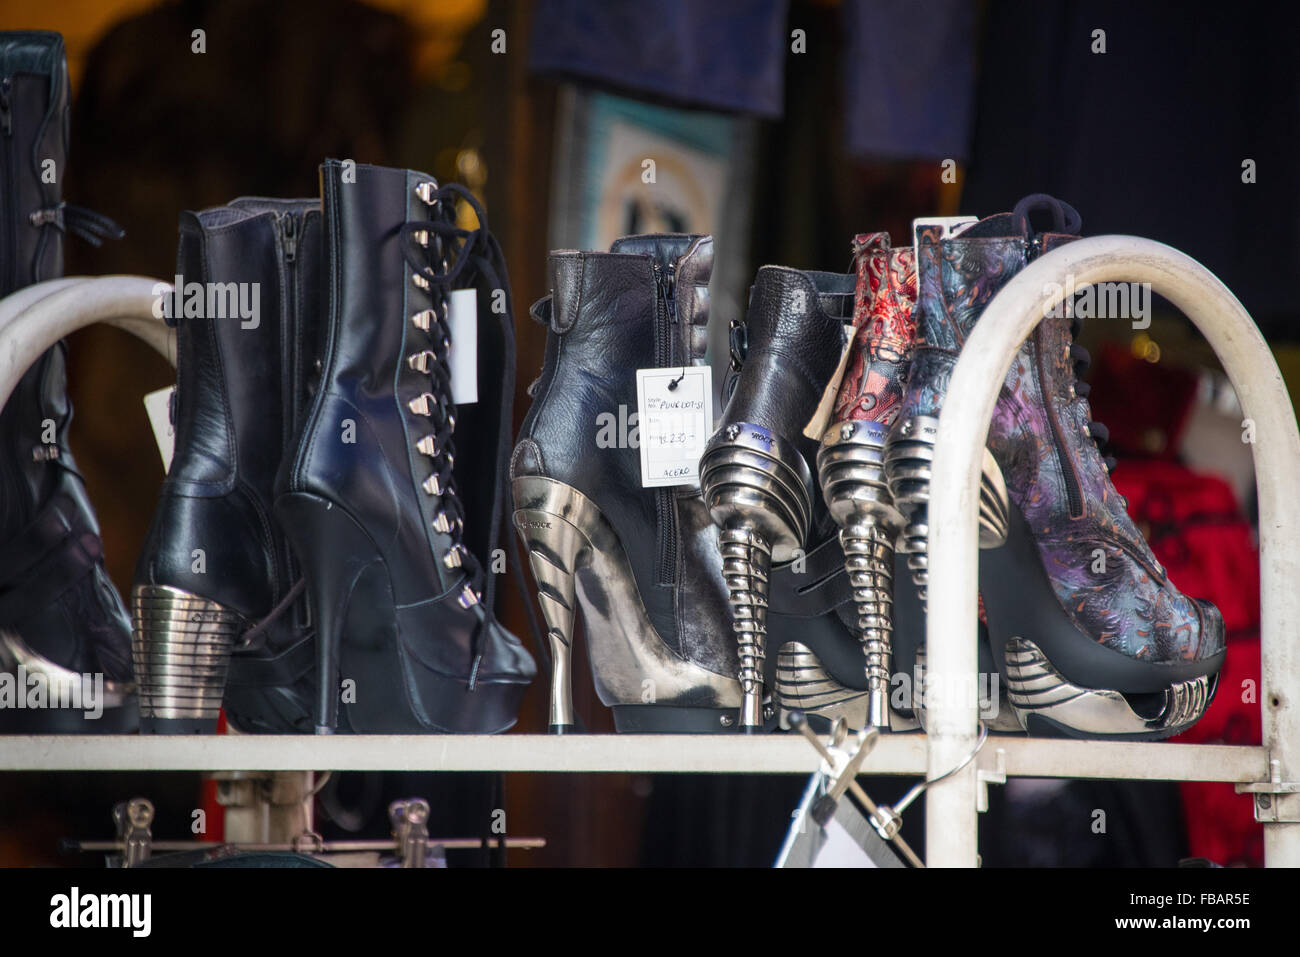 Trendy Footwear - Stock Image